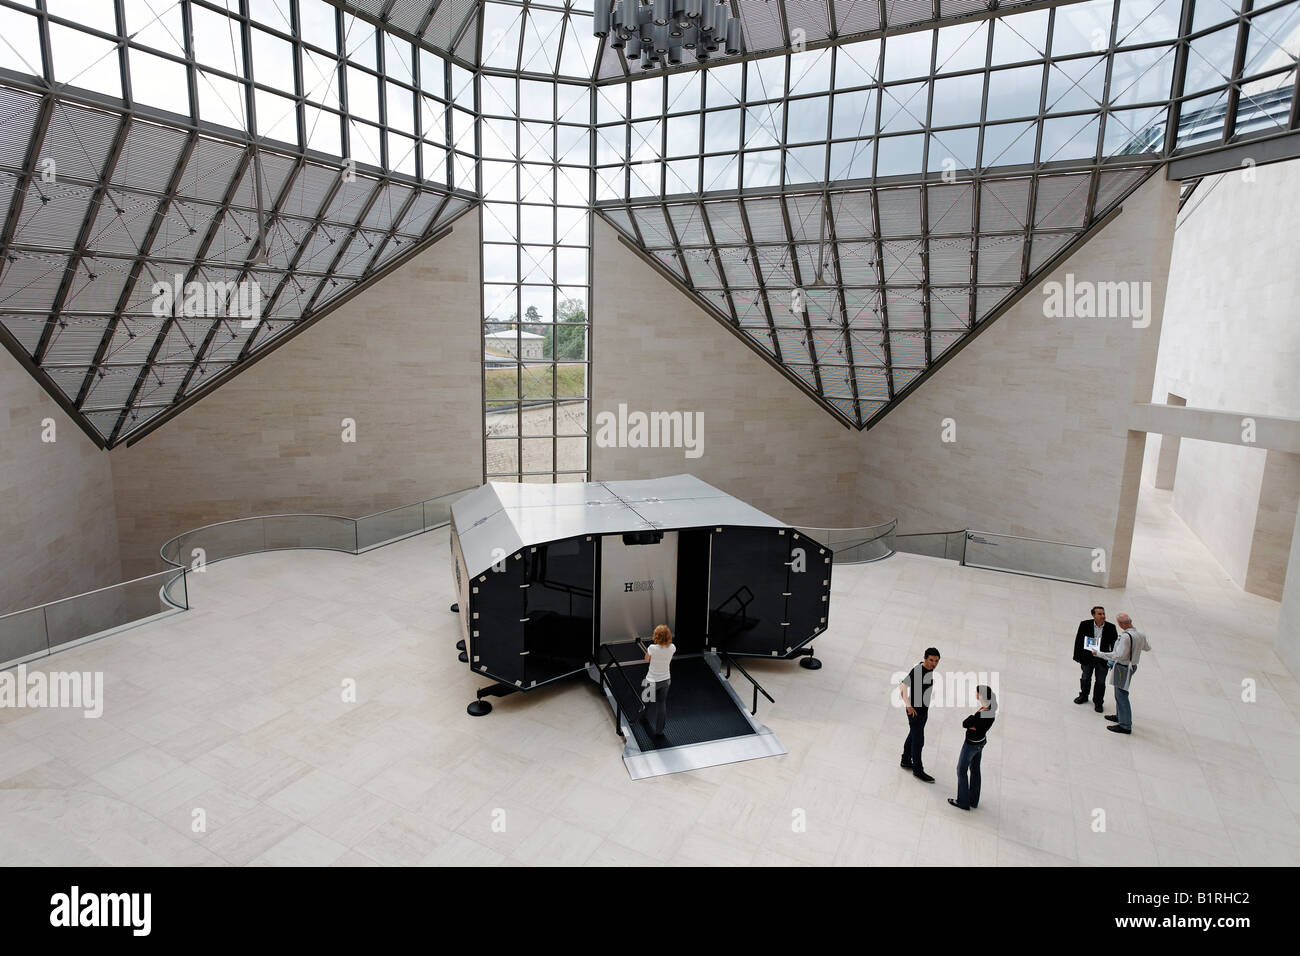 museum of modern art mus e d 39 art moderne grand duc jean mudam hall stock photo 18343586 alamy. Black Bedroom Furniture Sets. Home Design Ideas